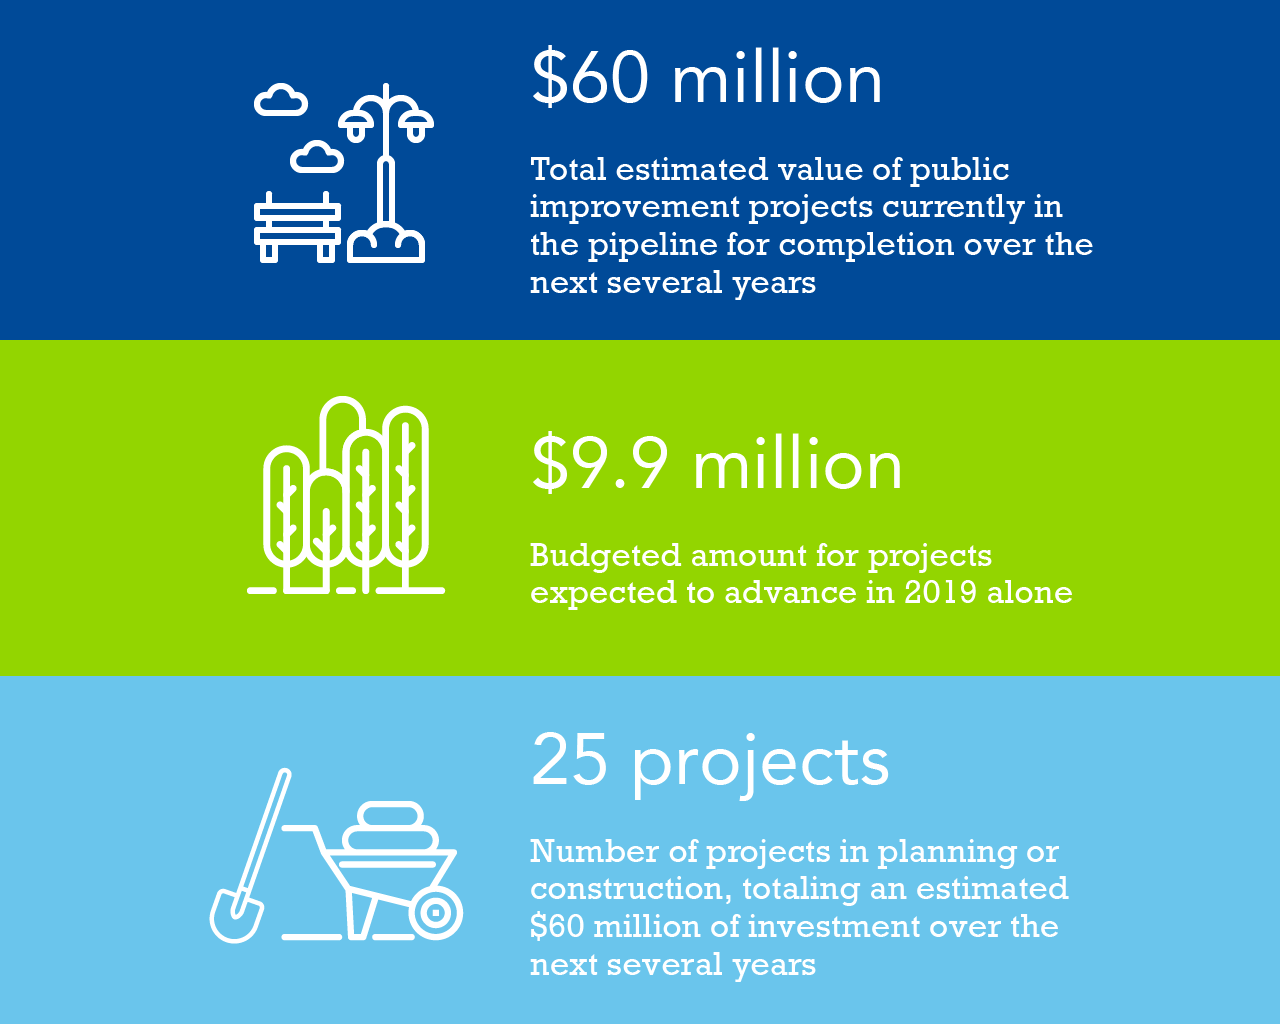 Highlights: $60 million in estimated value of public improvement projects currently in the pipeline.